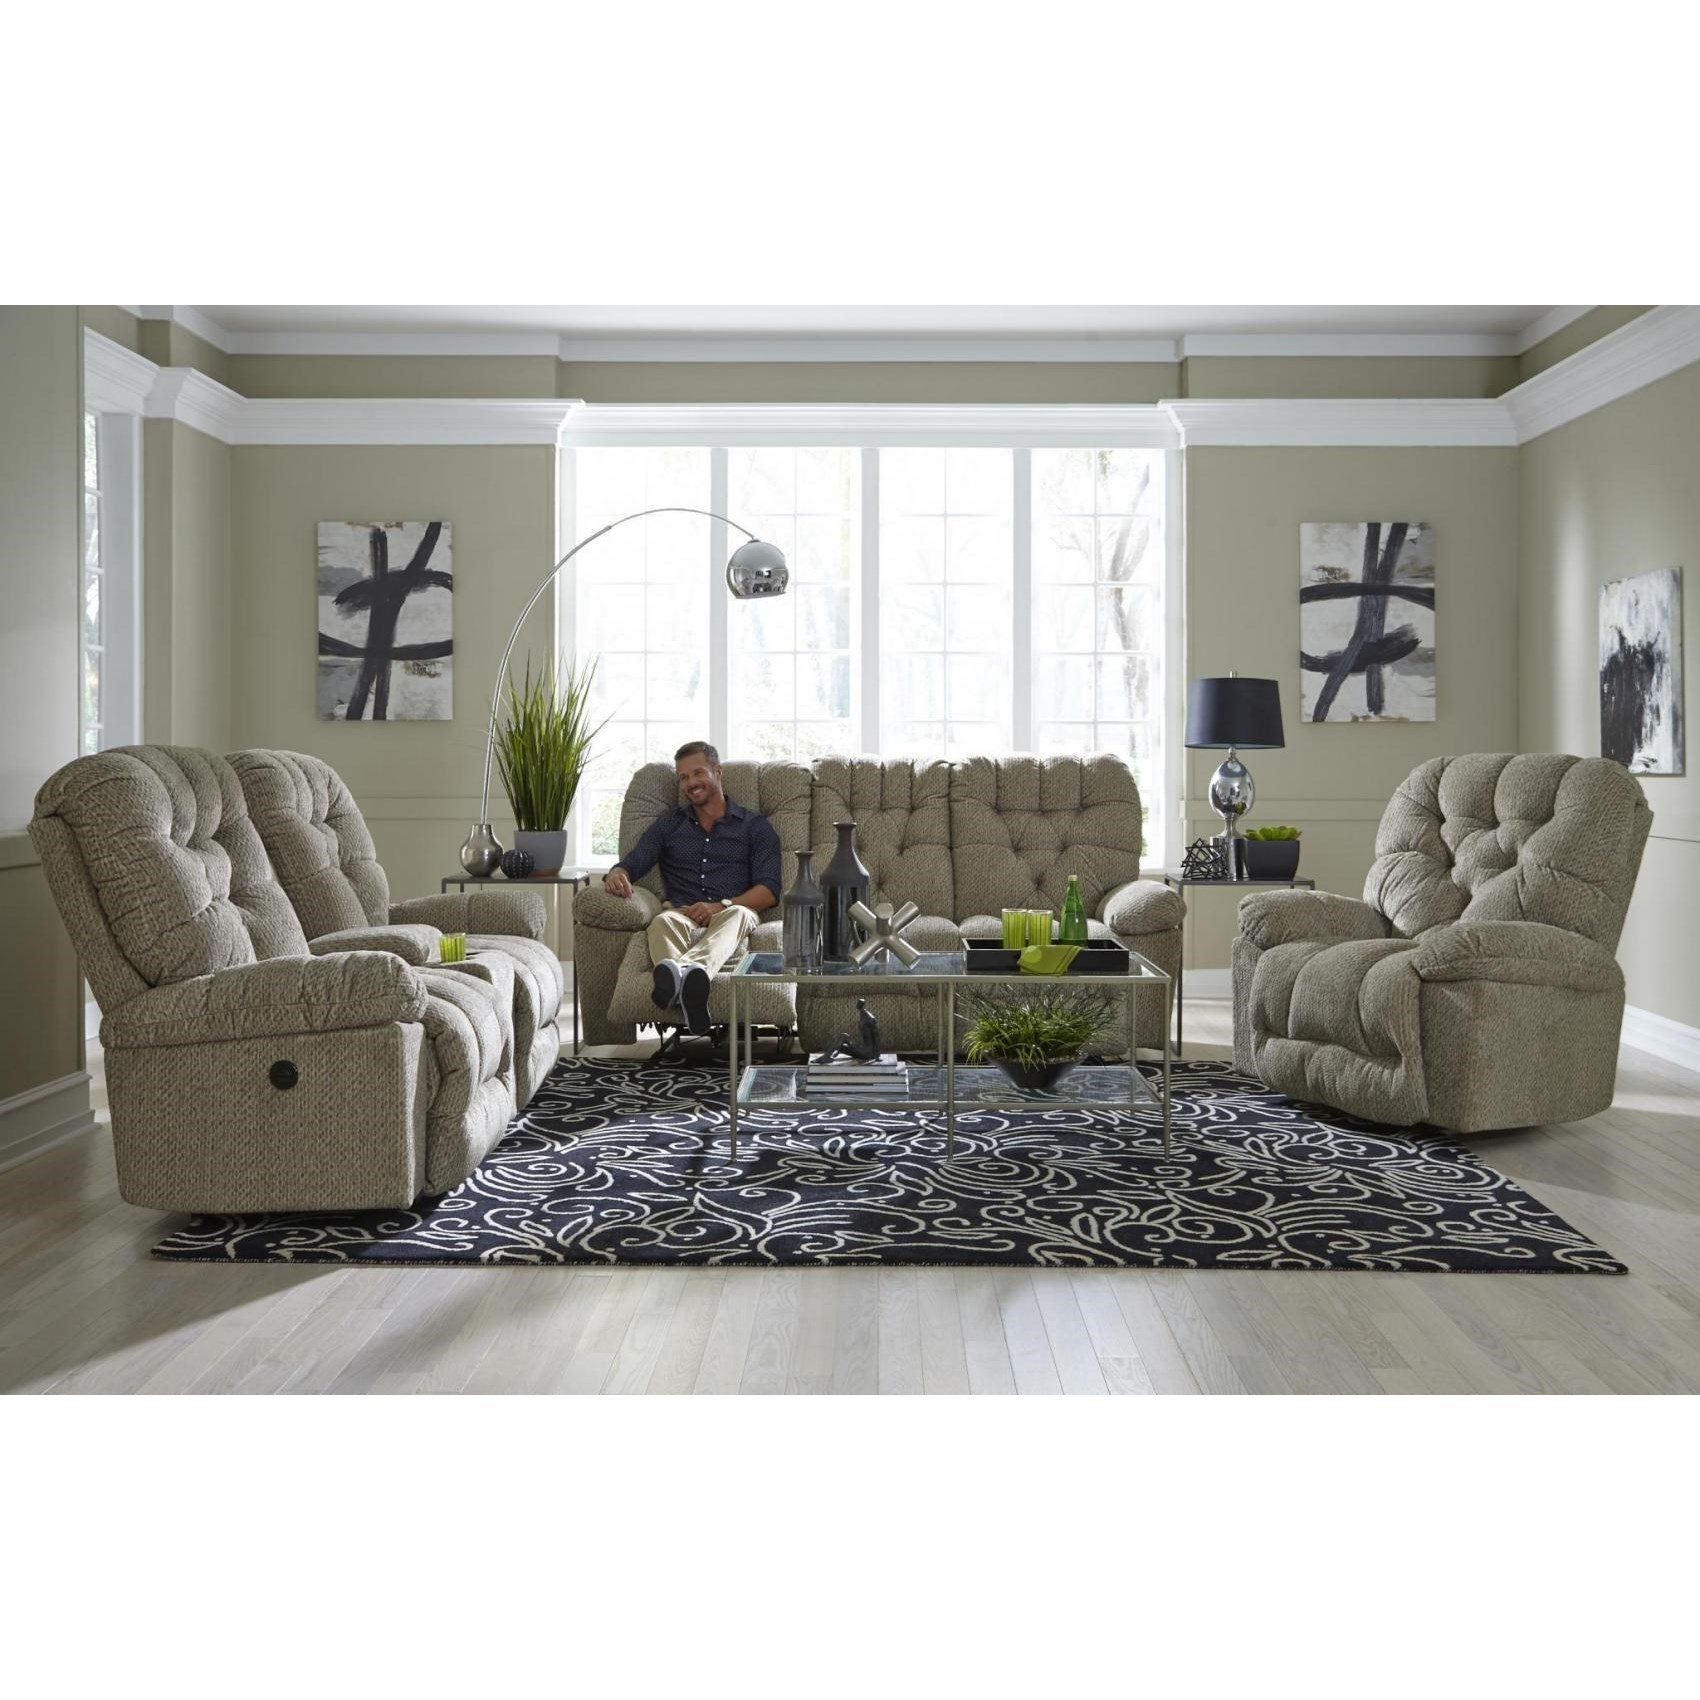 Bolt Reclining Living Room Group by Best Home Furnishings at Zak's Home